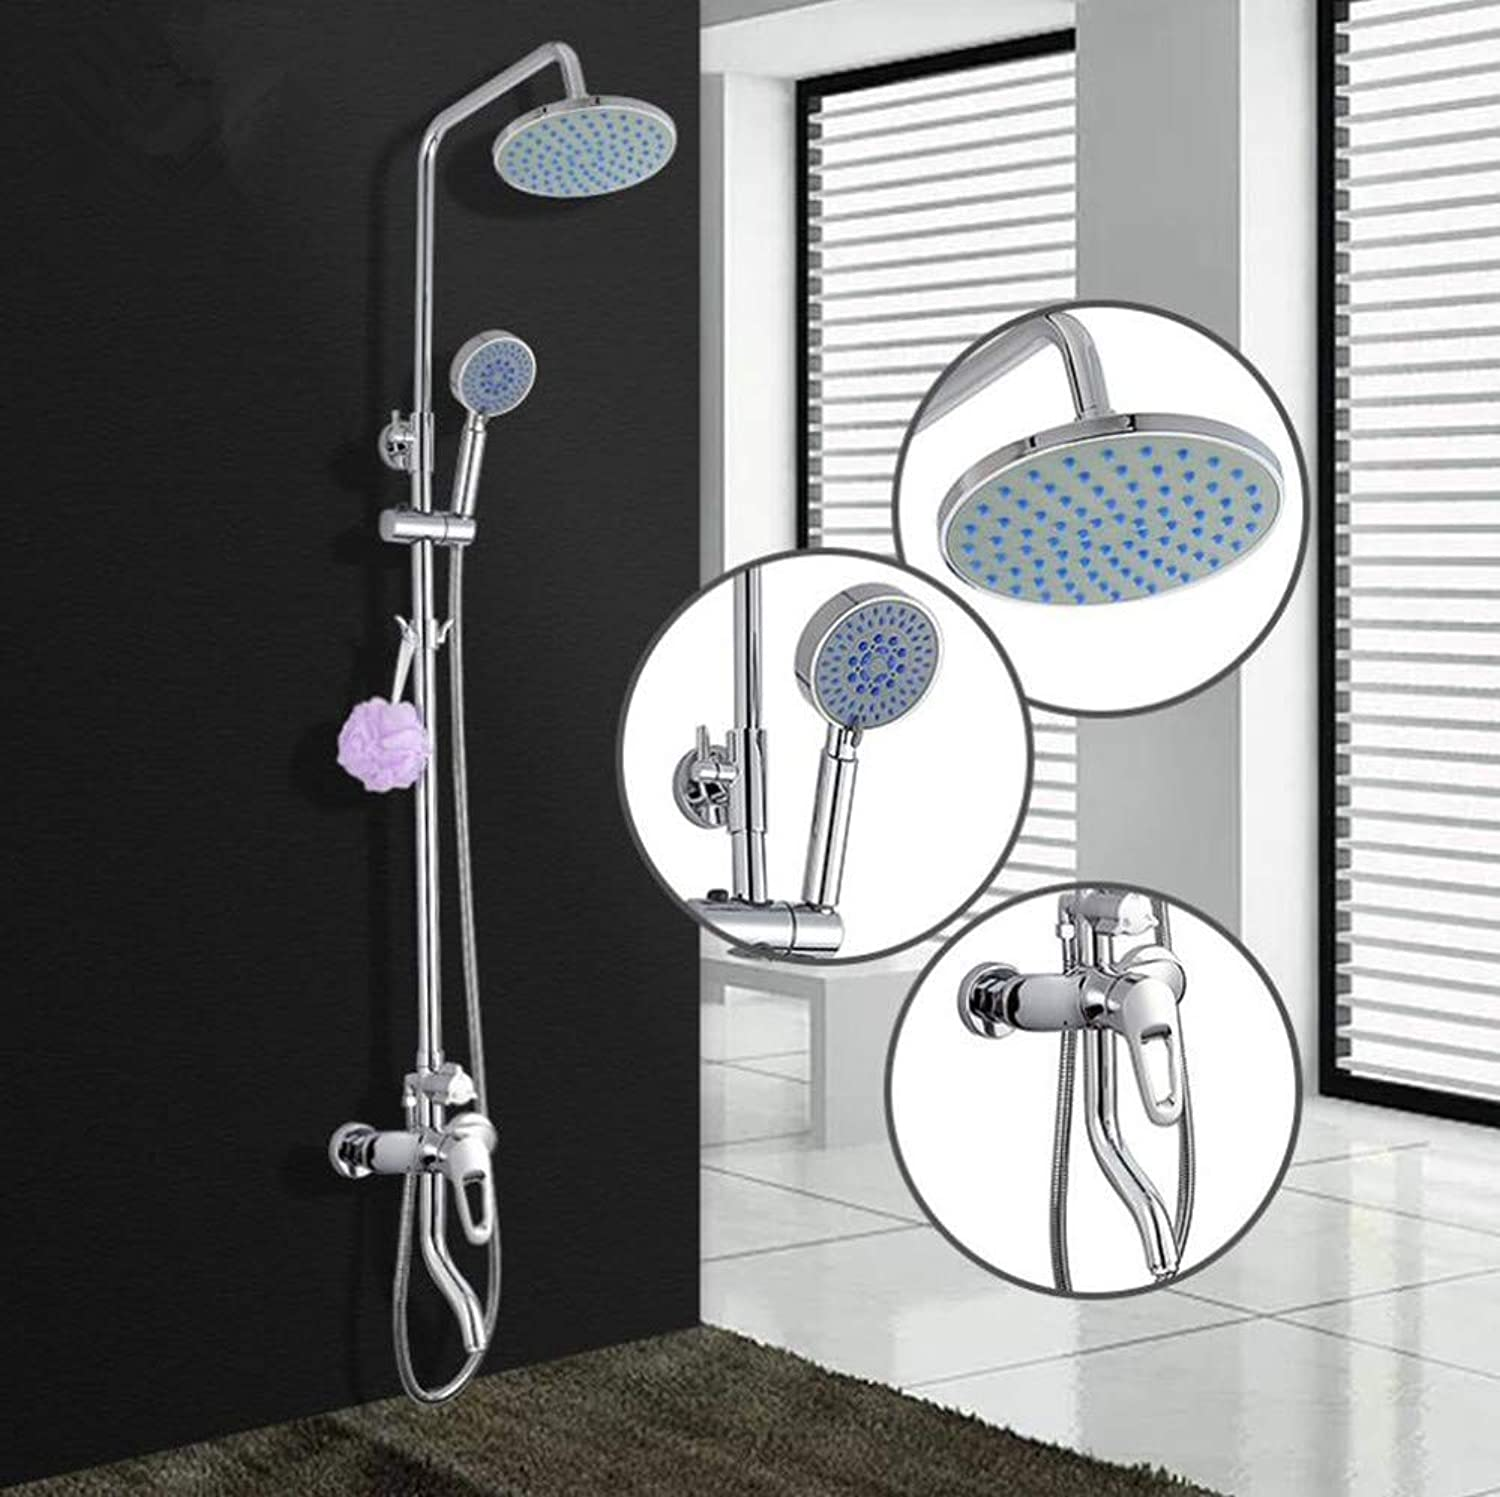 Bathroom Copper Shower Set Three-speed Shower Set Hotel Bathroom Hot And Cold Mixed Shower